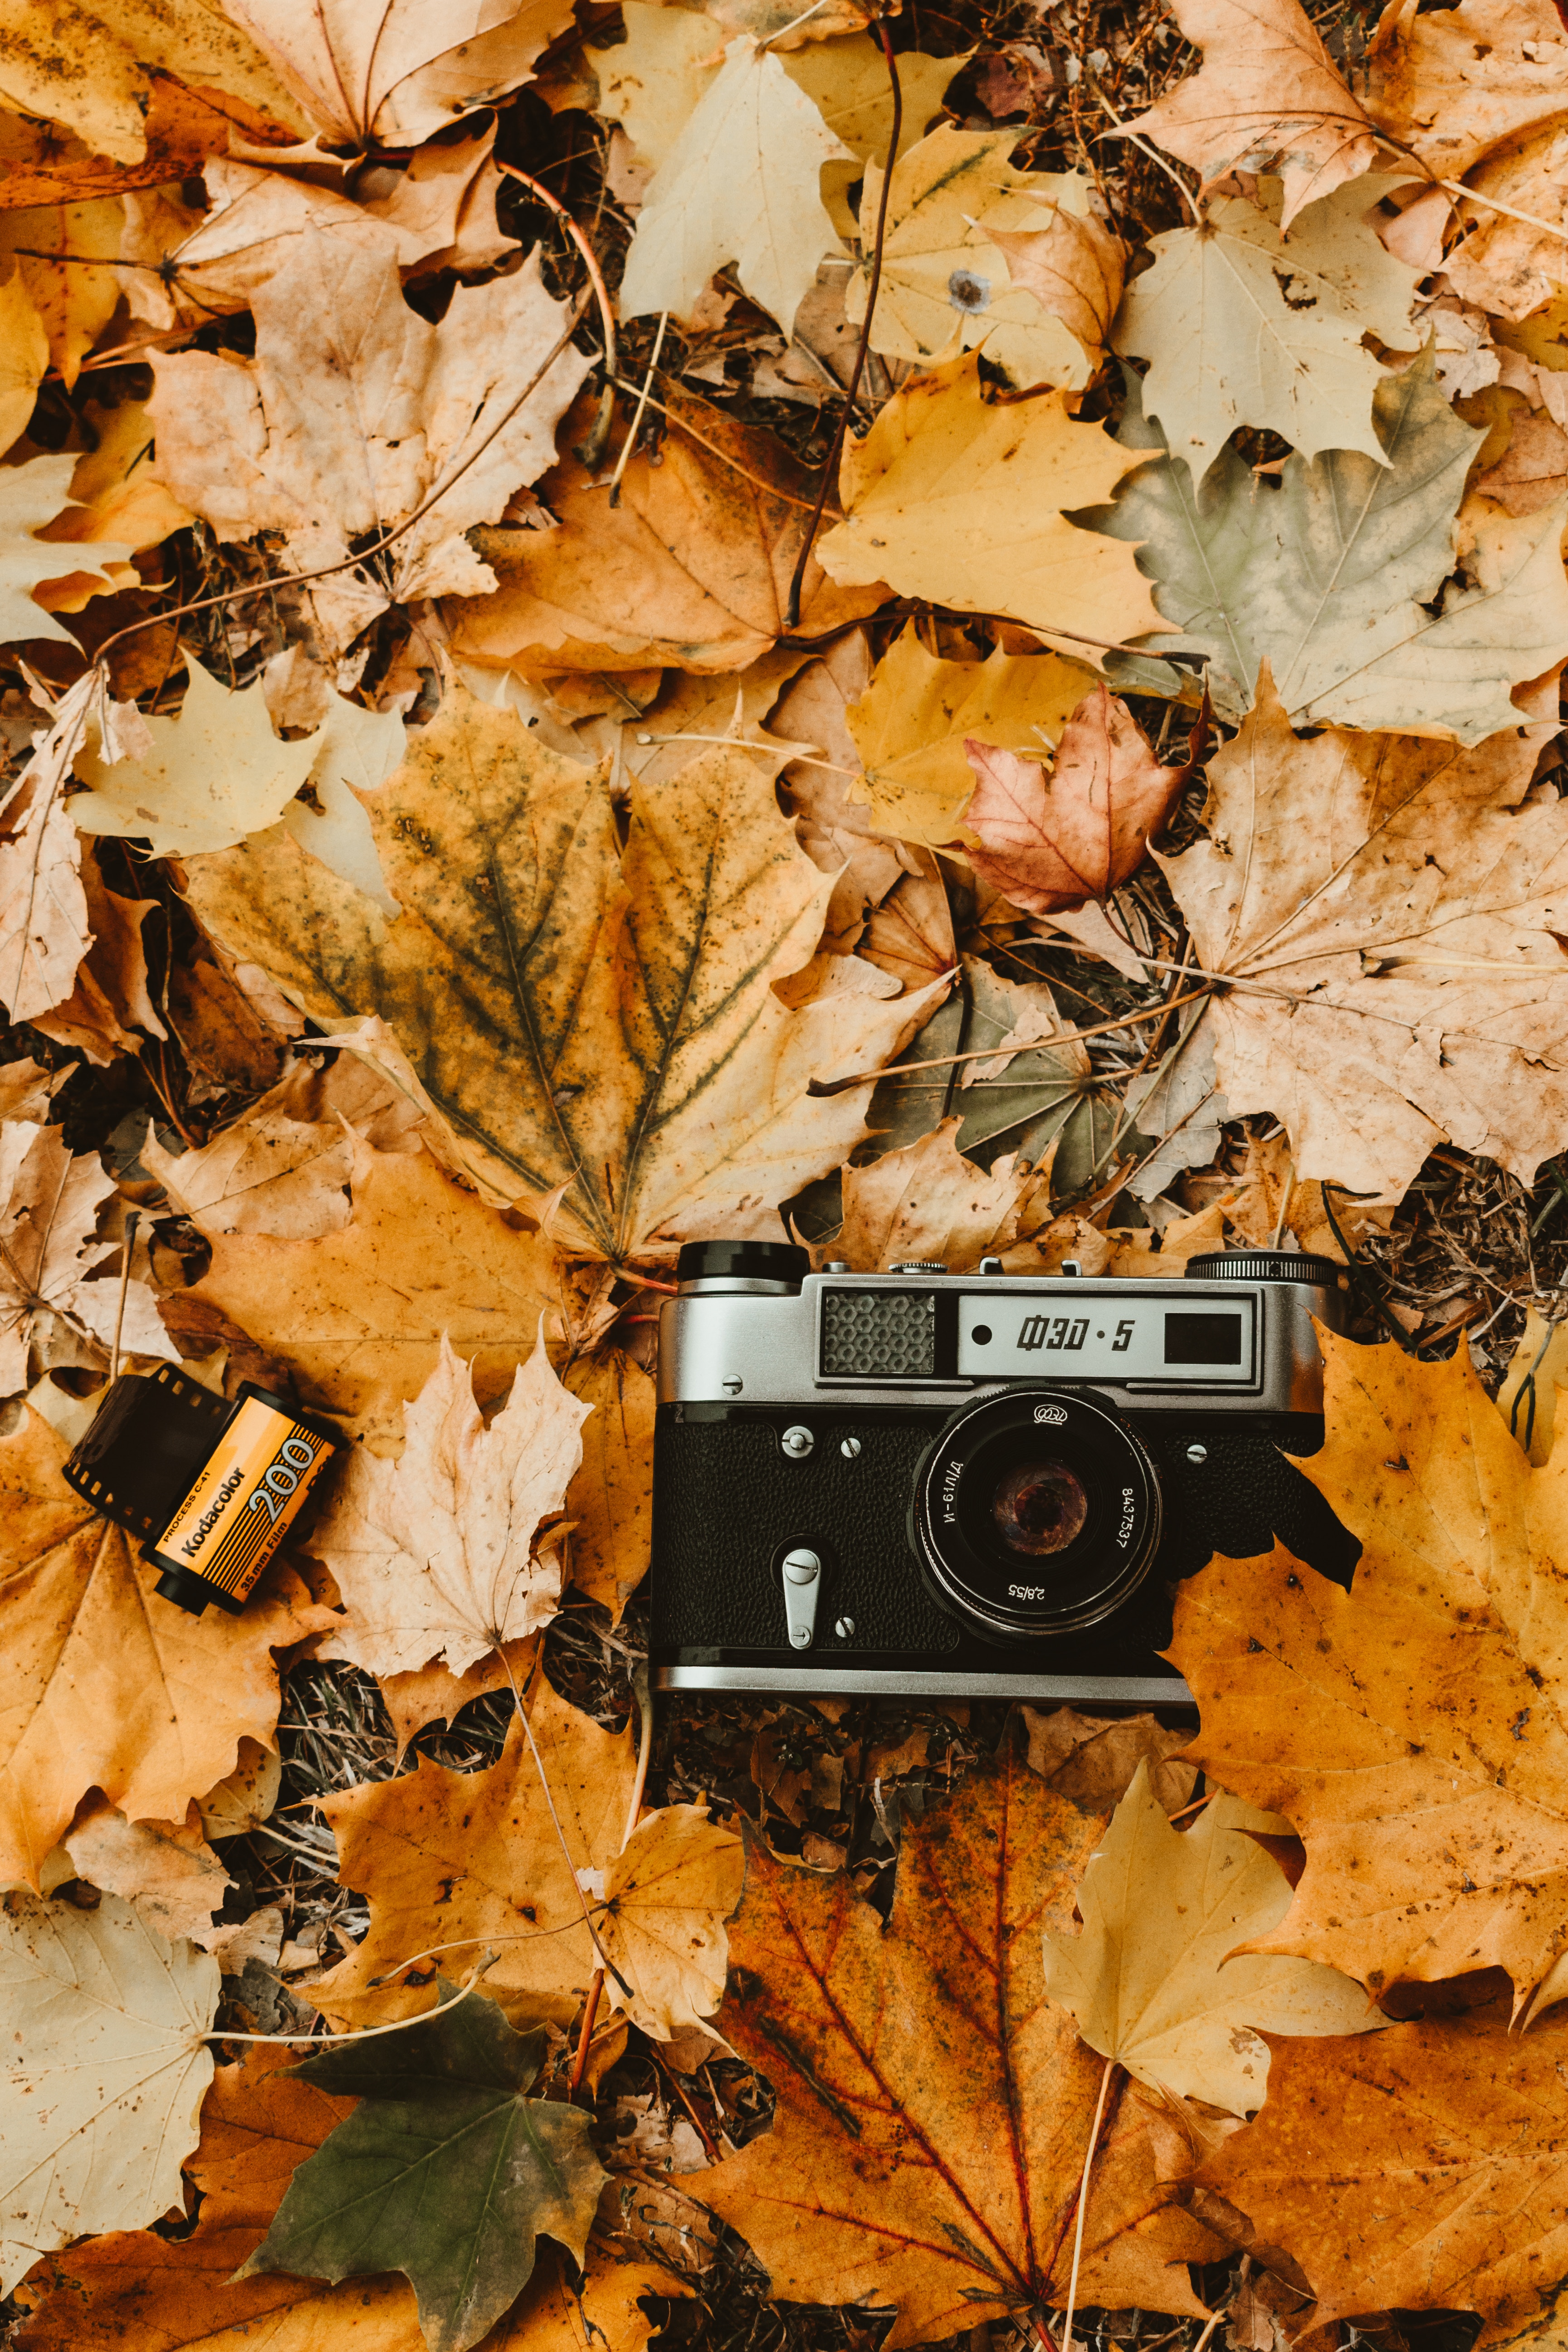 74128 download wallpaper Technologies, Technology, Camera, Autumn, Foliage, Retro, Vintage, Camera Roll screensavers and pictures for free